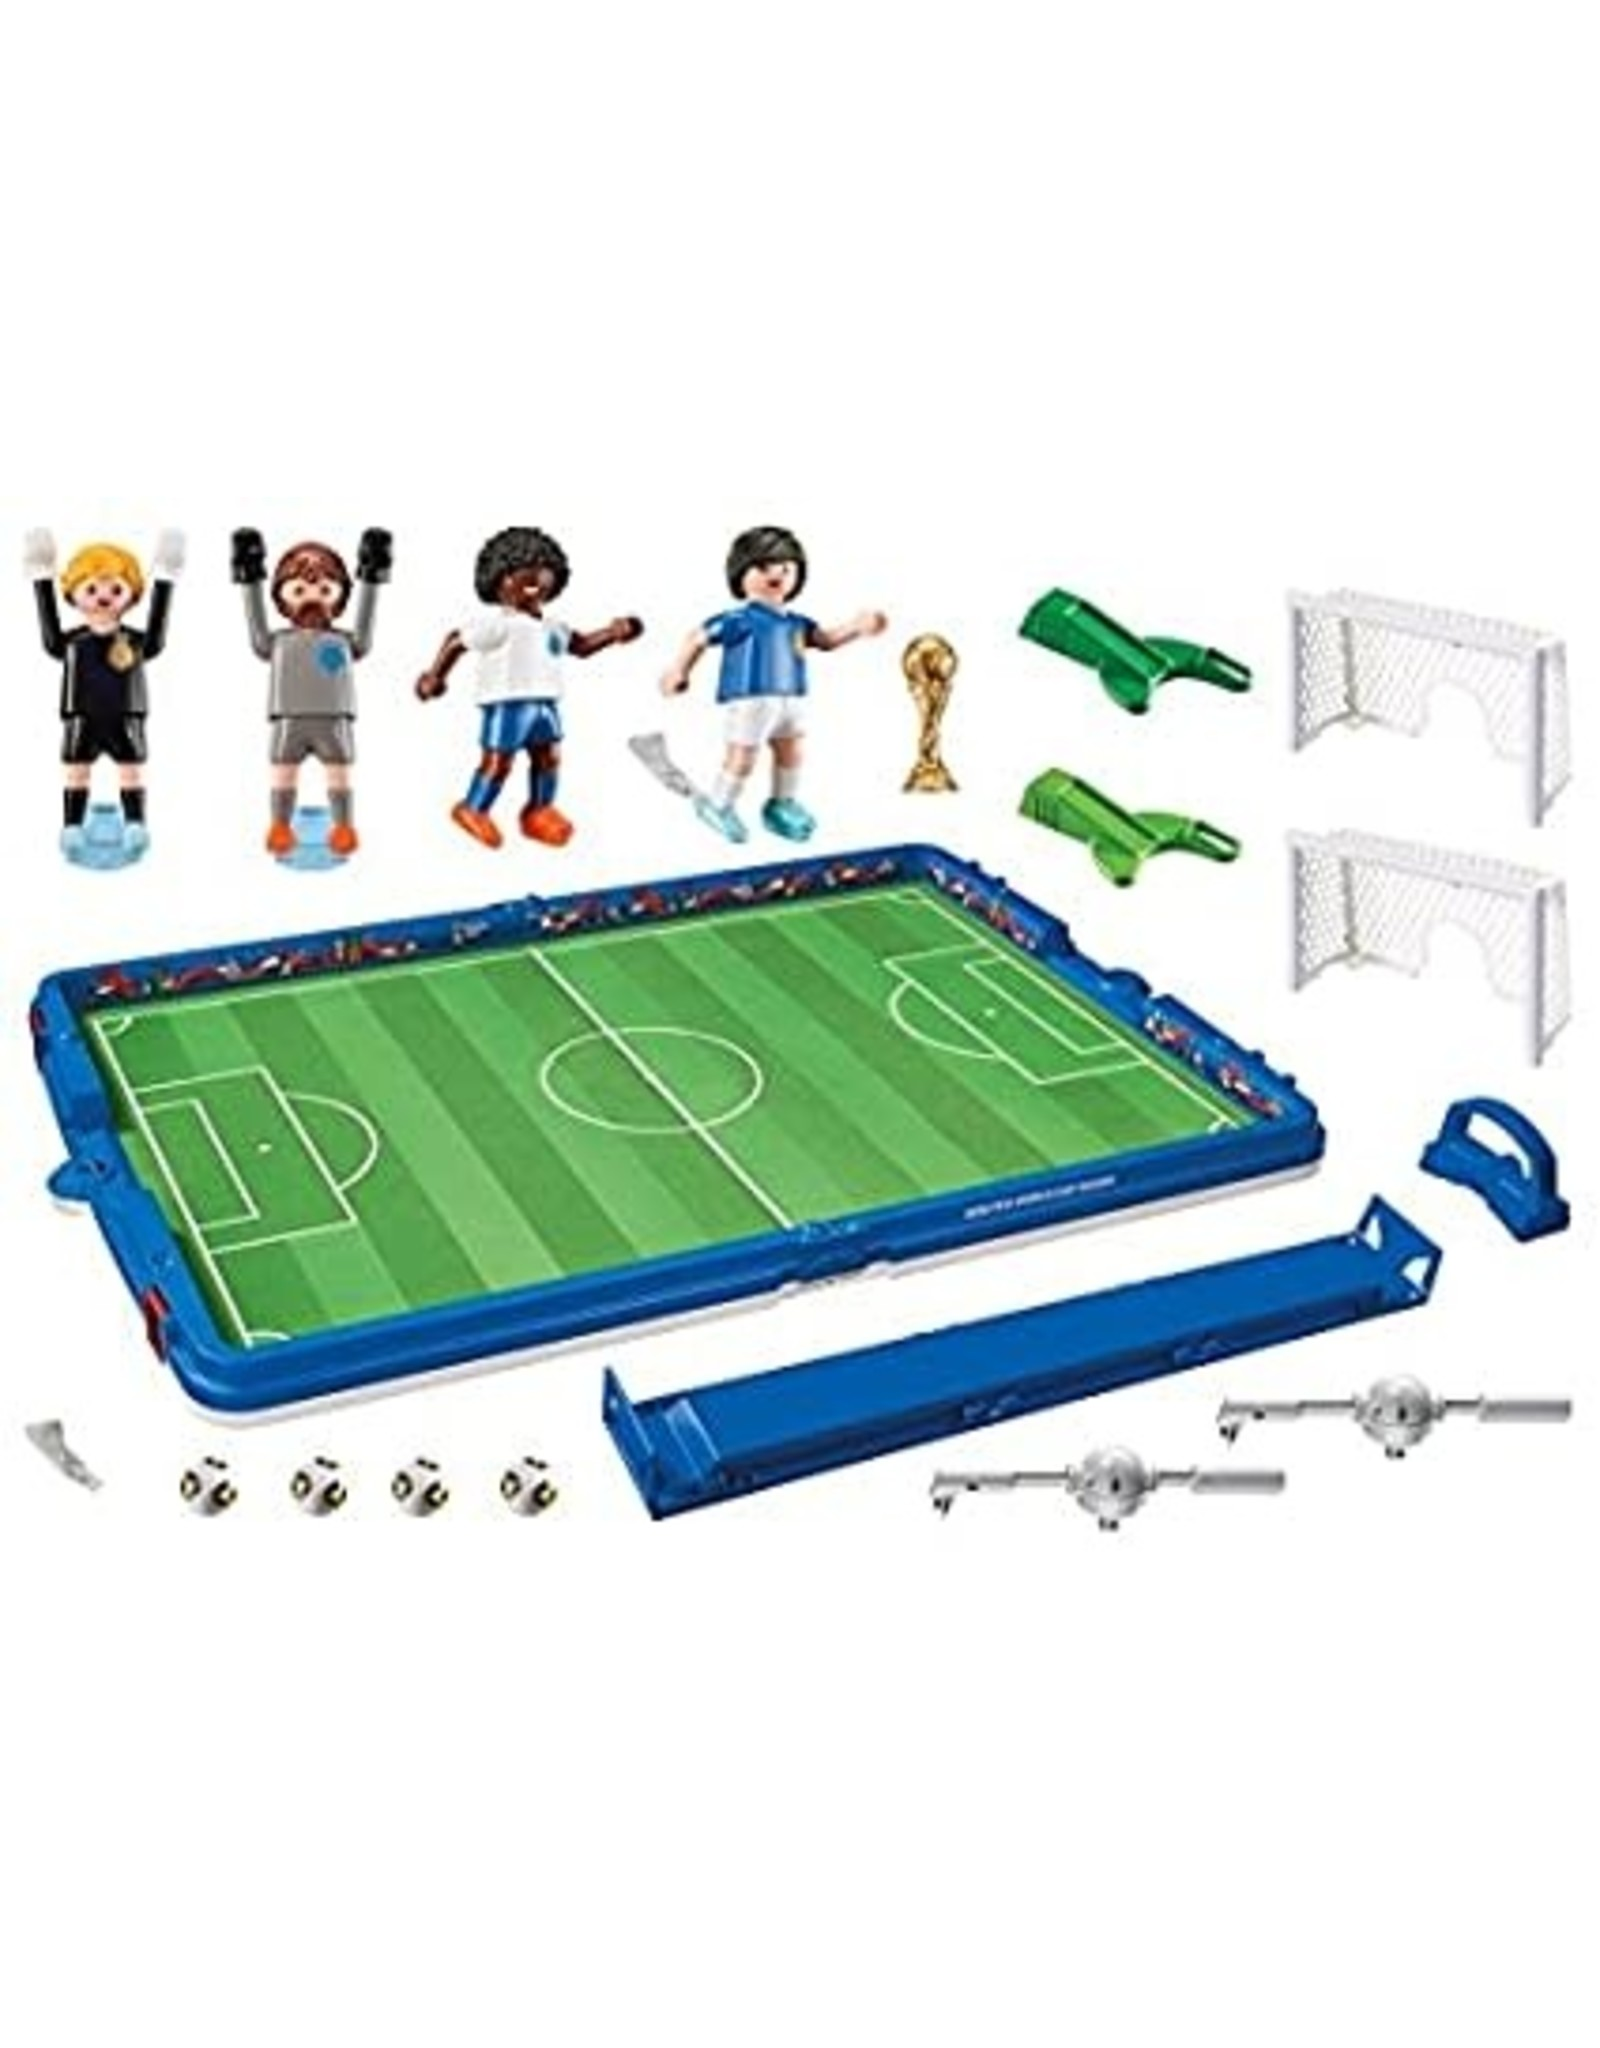 Playmobil Take Along FIFA World Cup Russia Arena